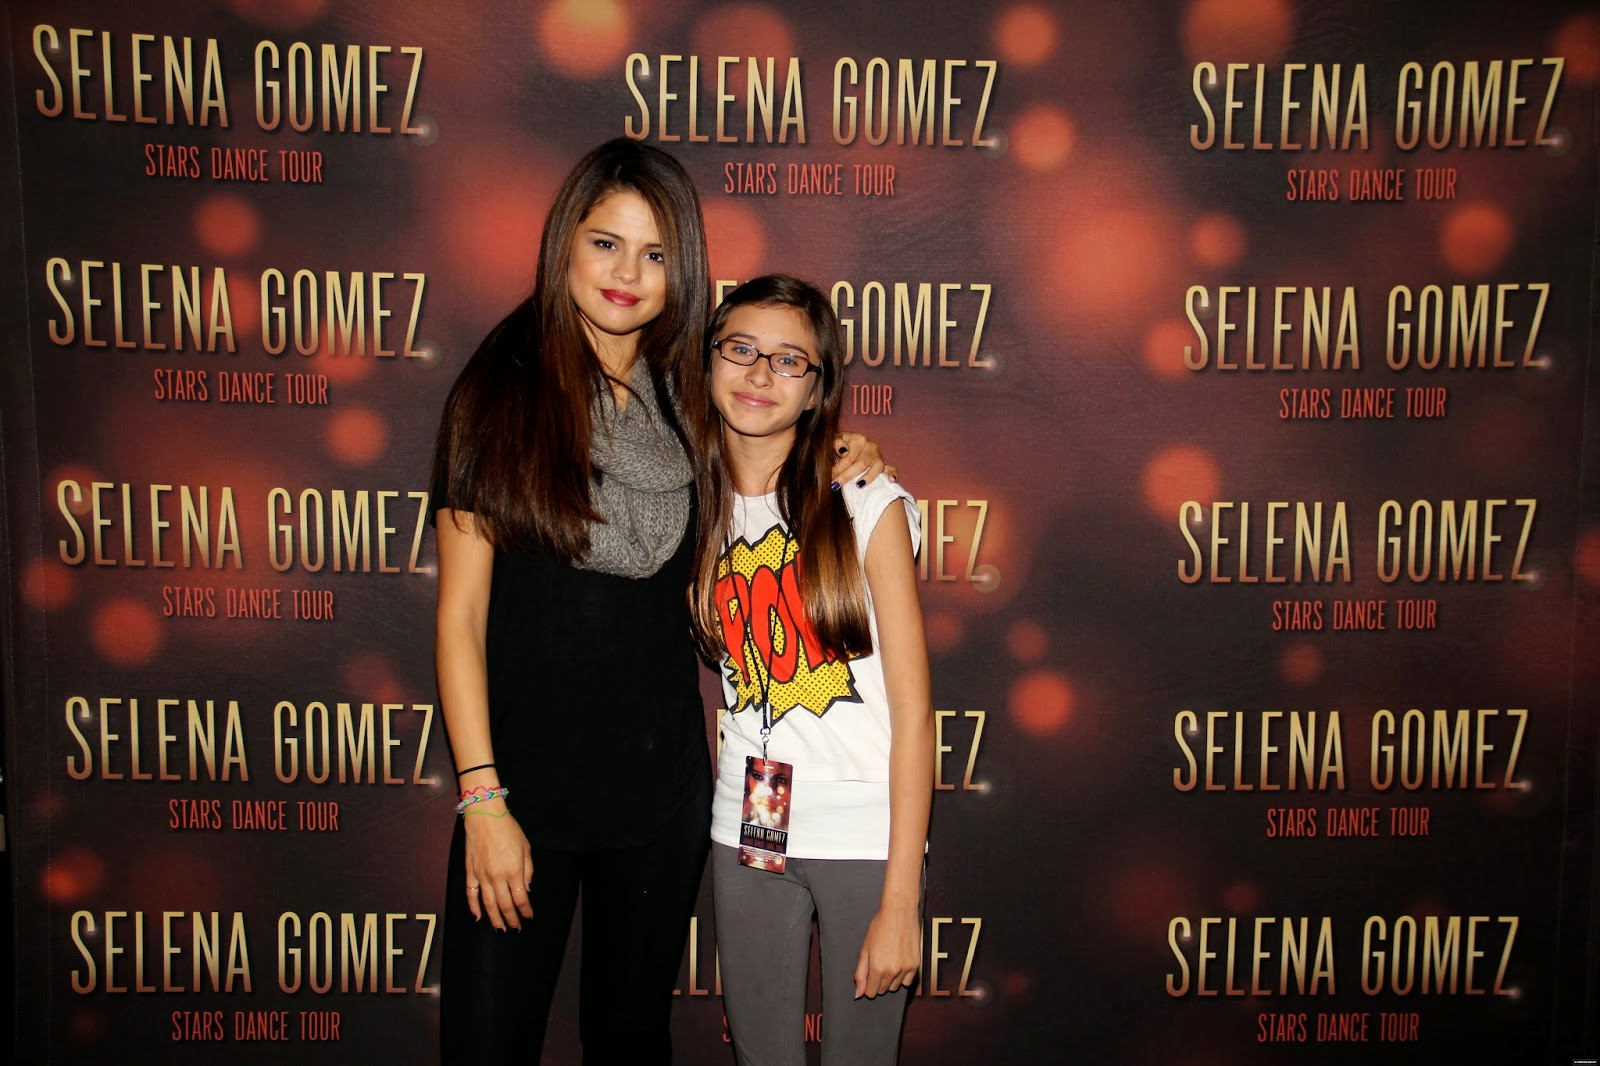 how to meet selena gomez 2013